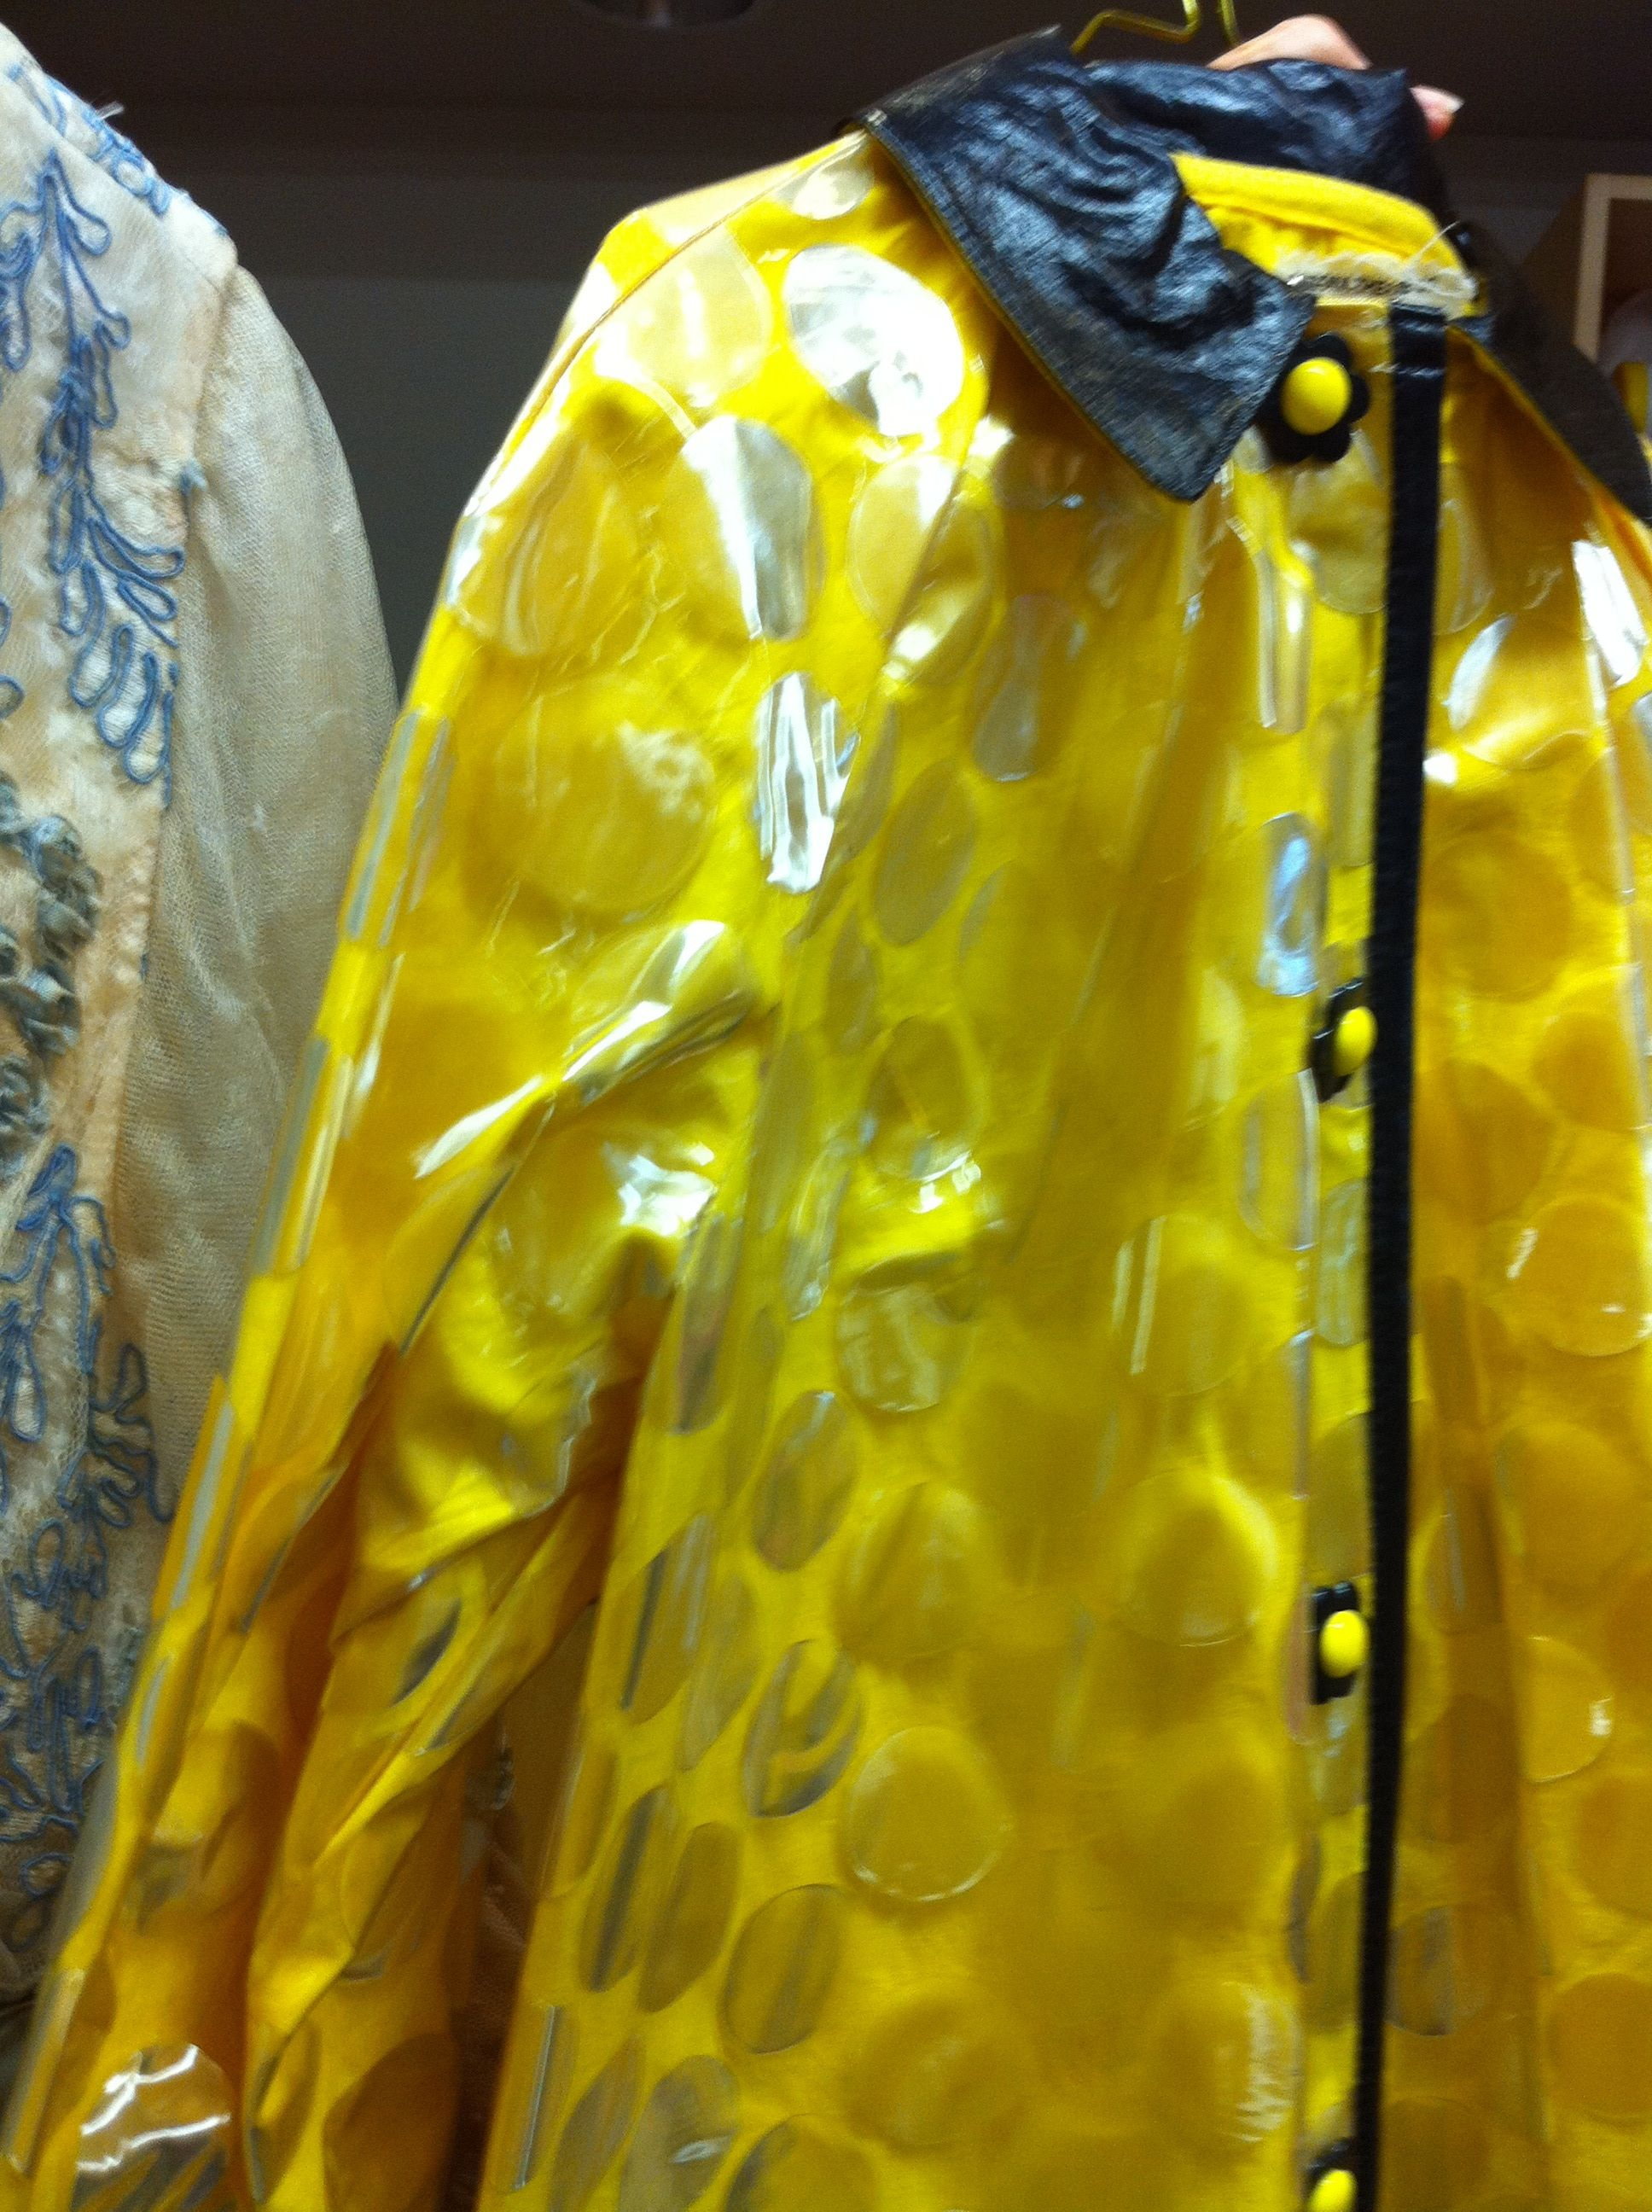 60s-style raincoat made from a shower curtain.